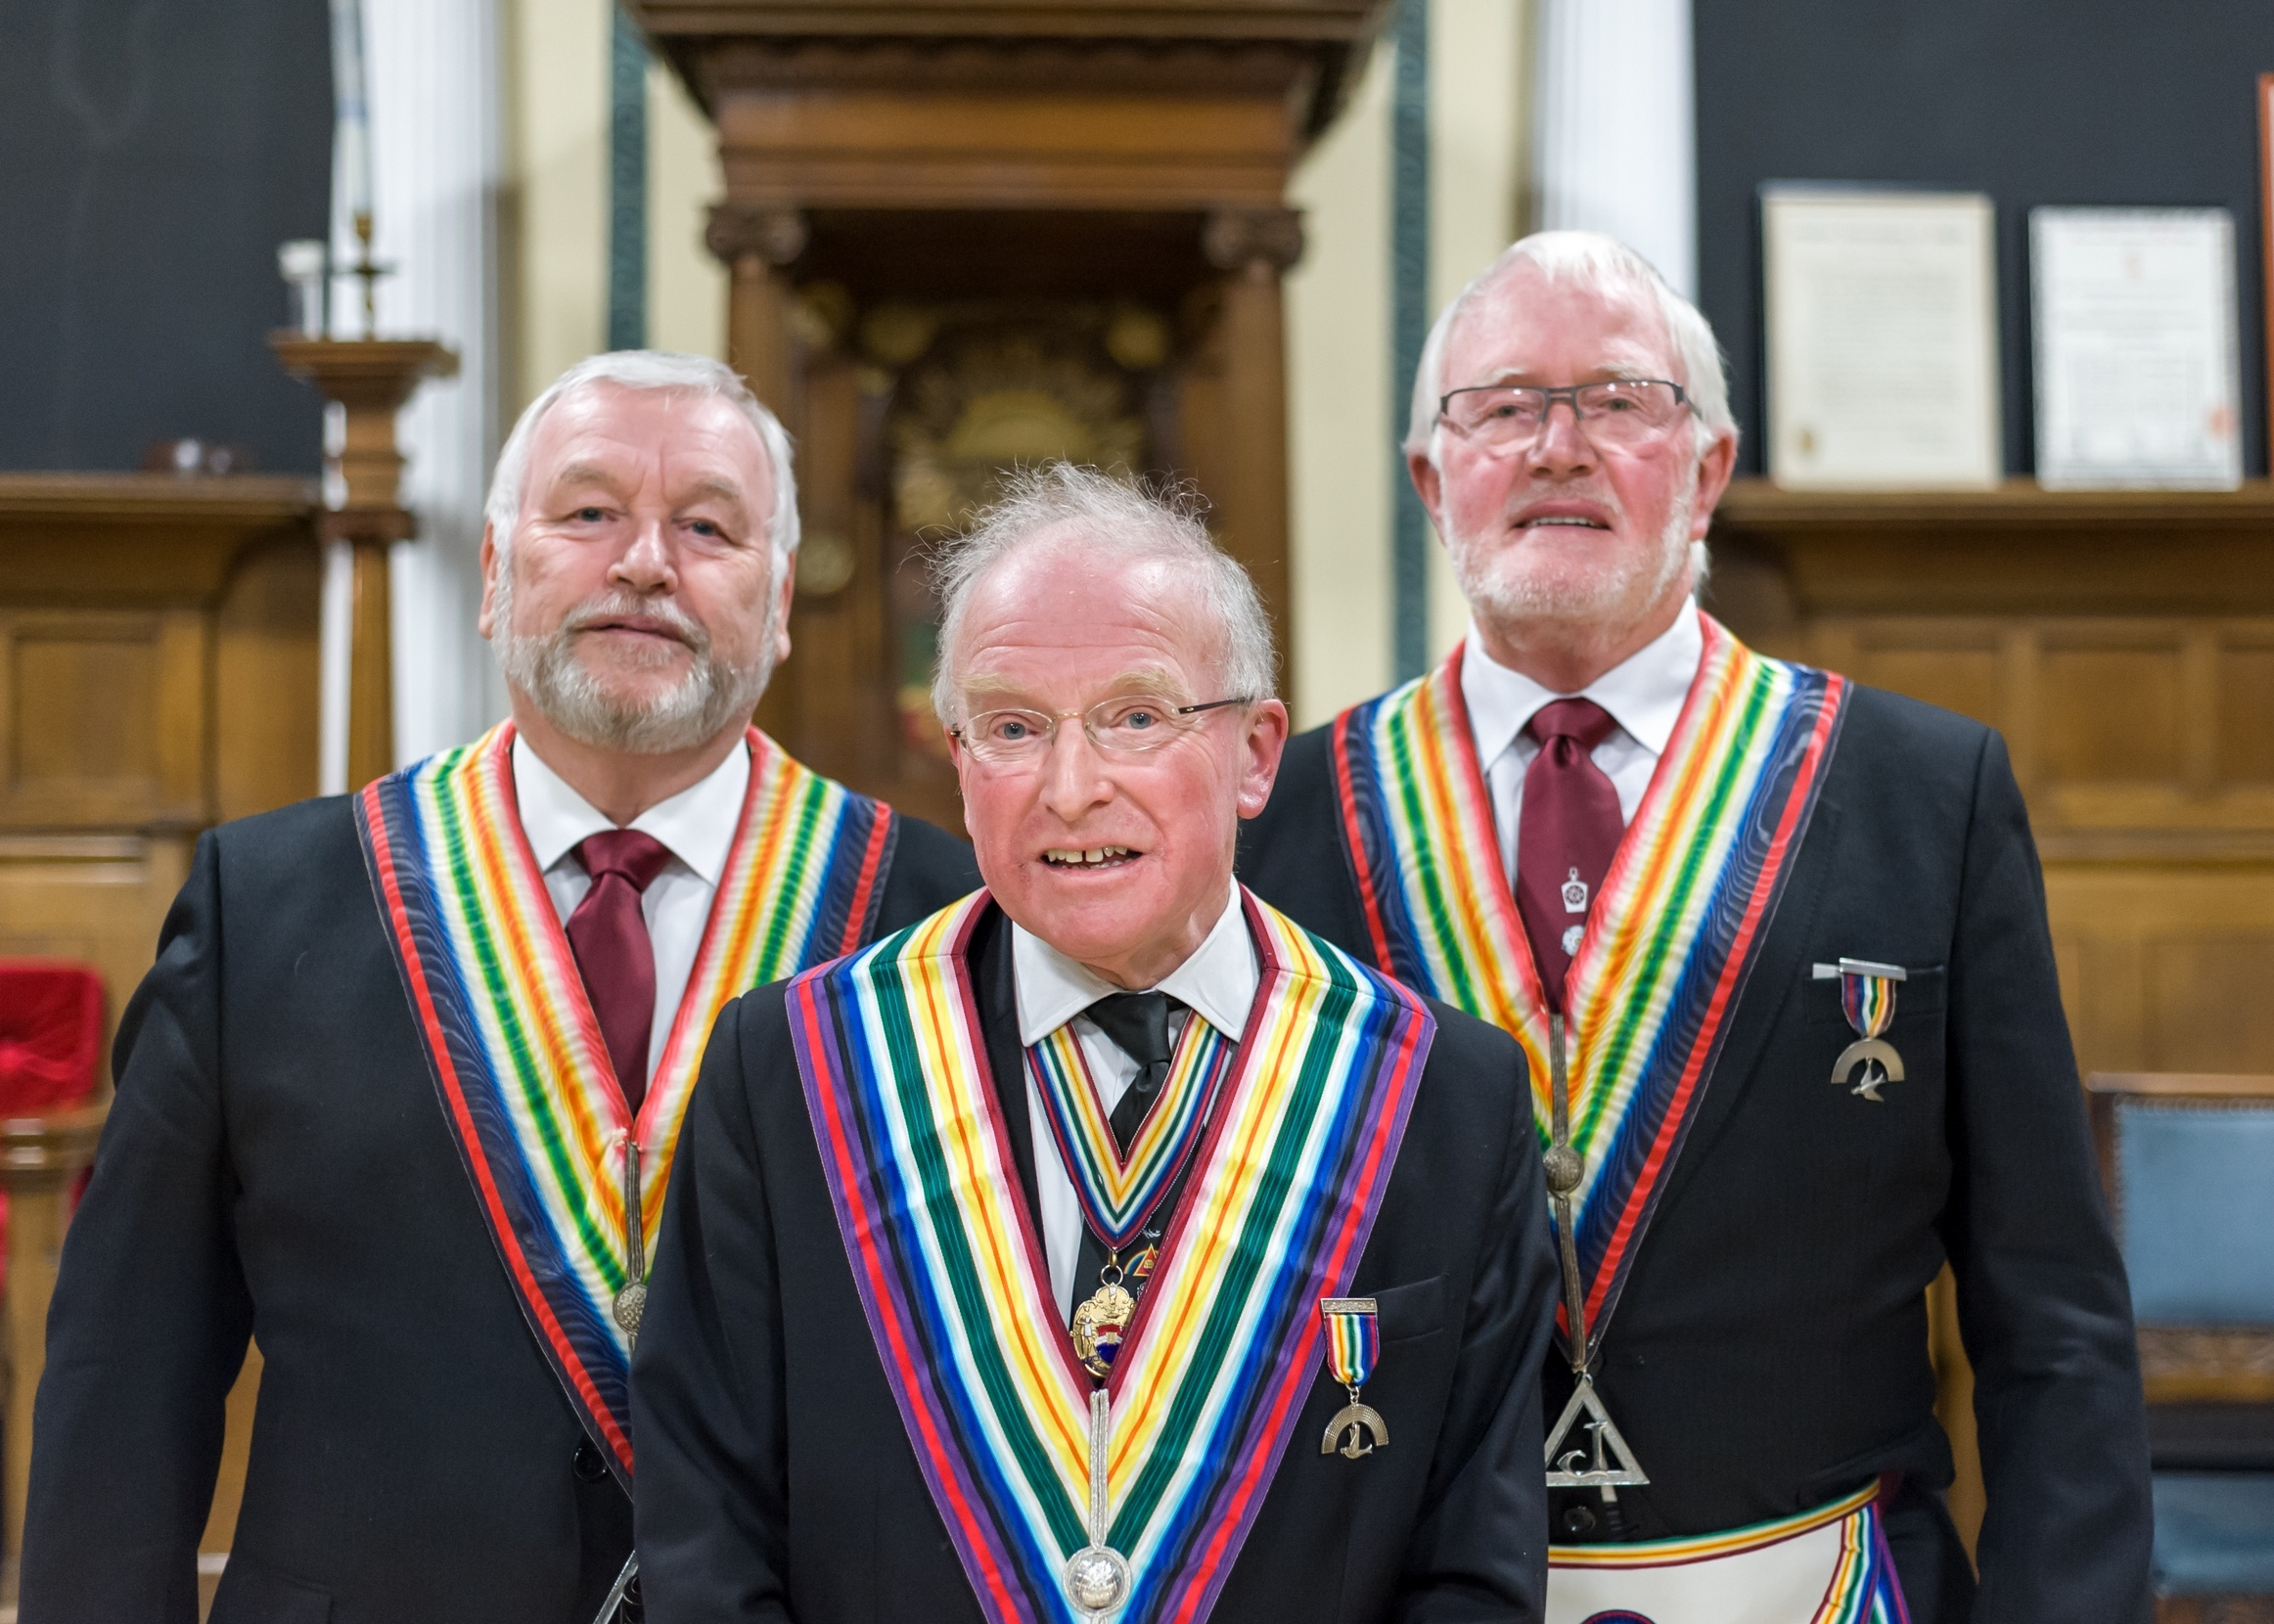 You are never too old to take another Step in Freemasonry